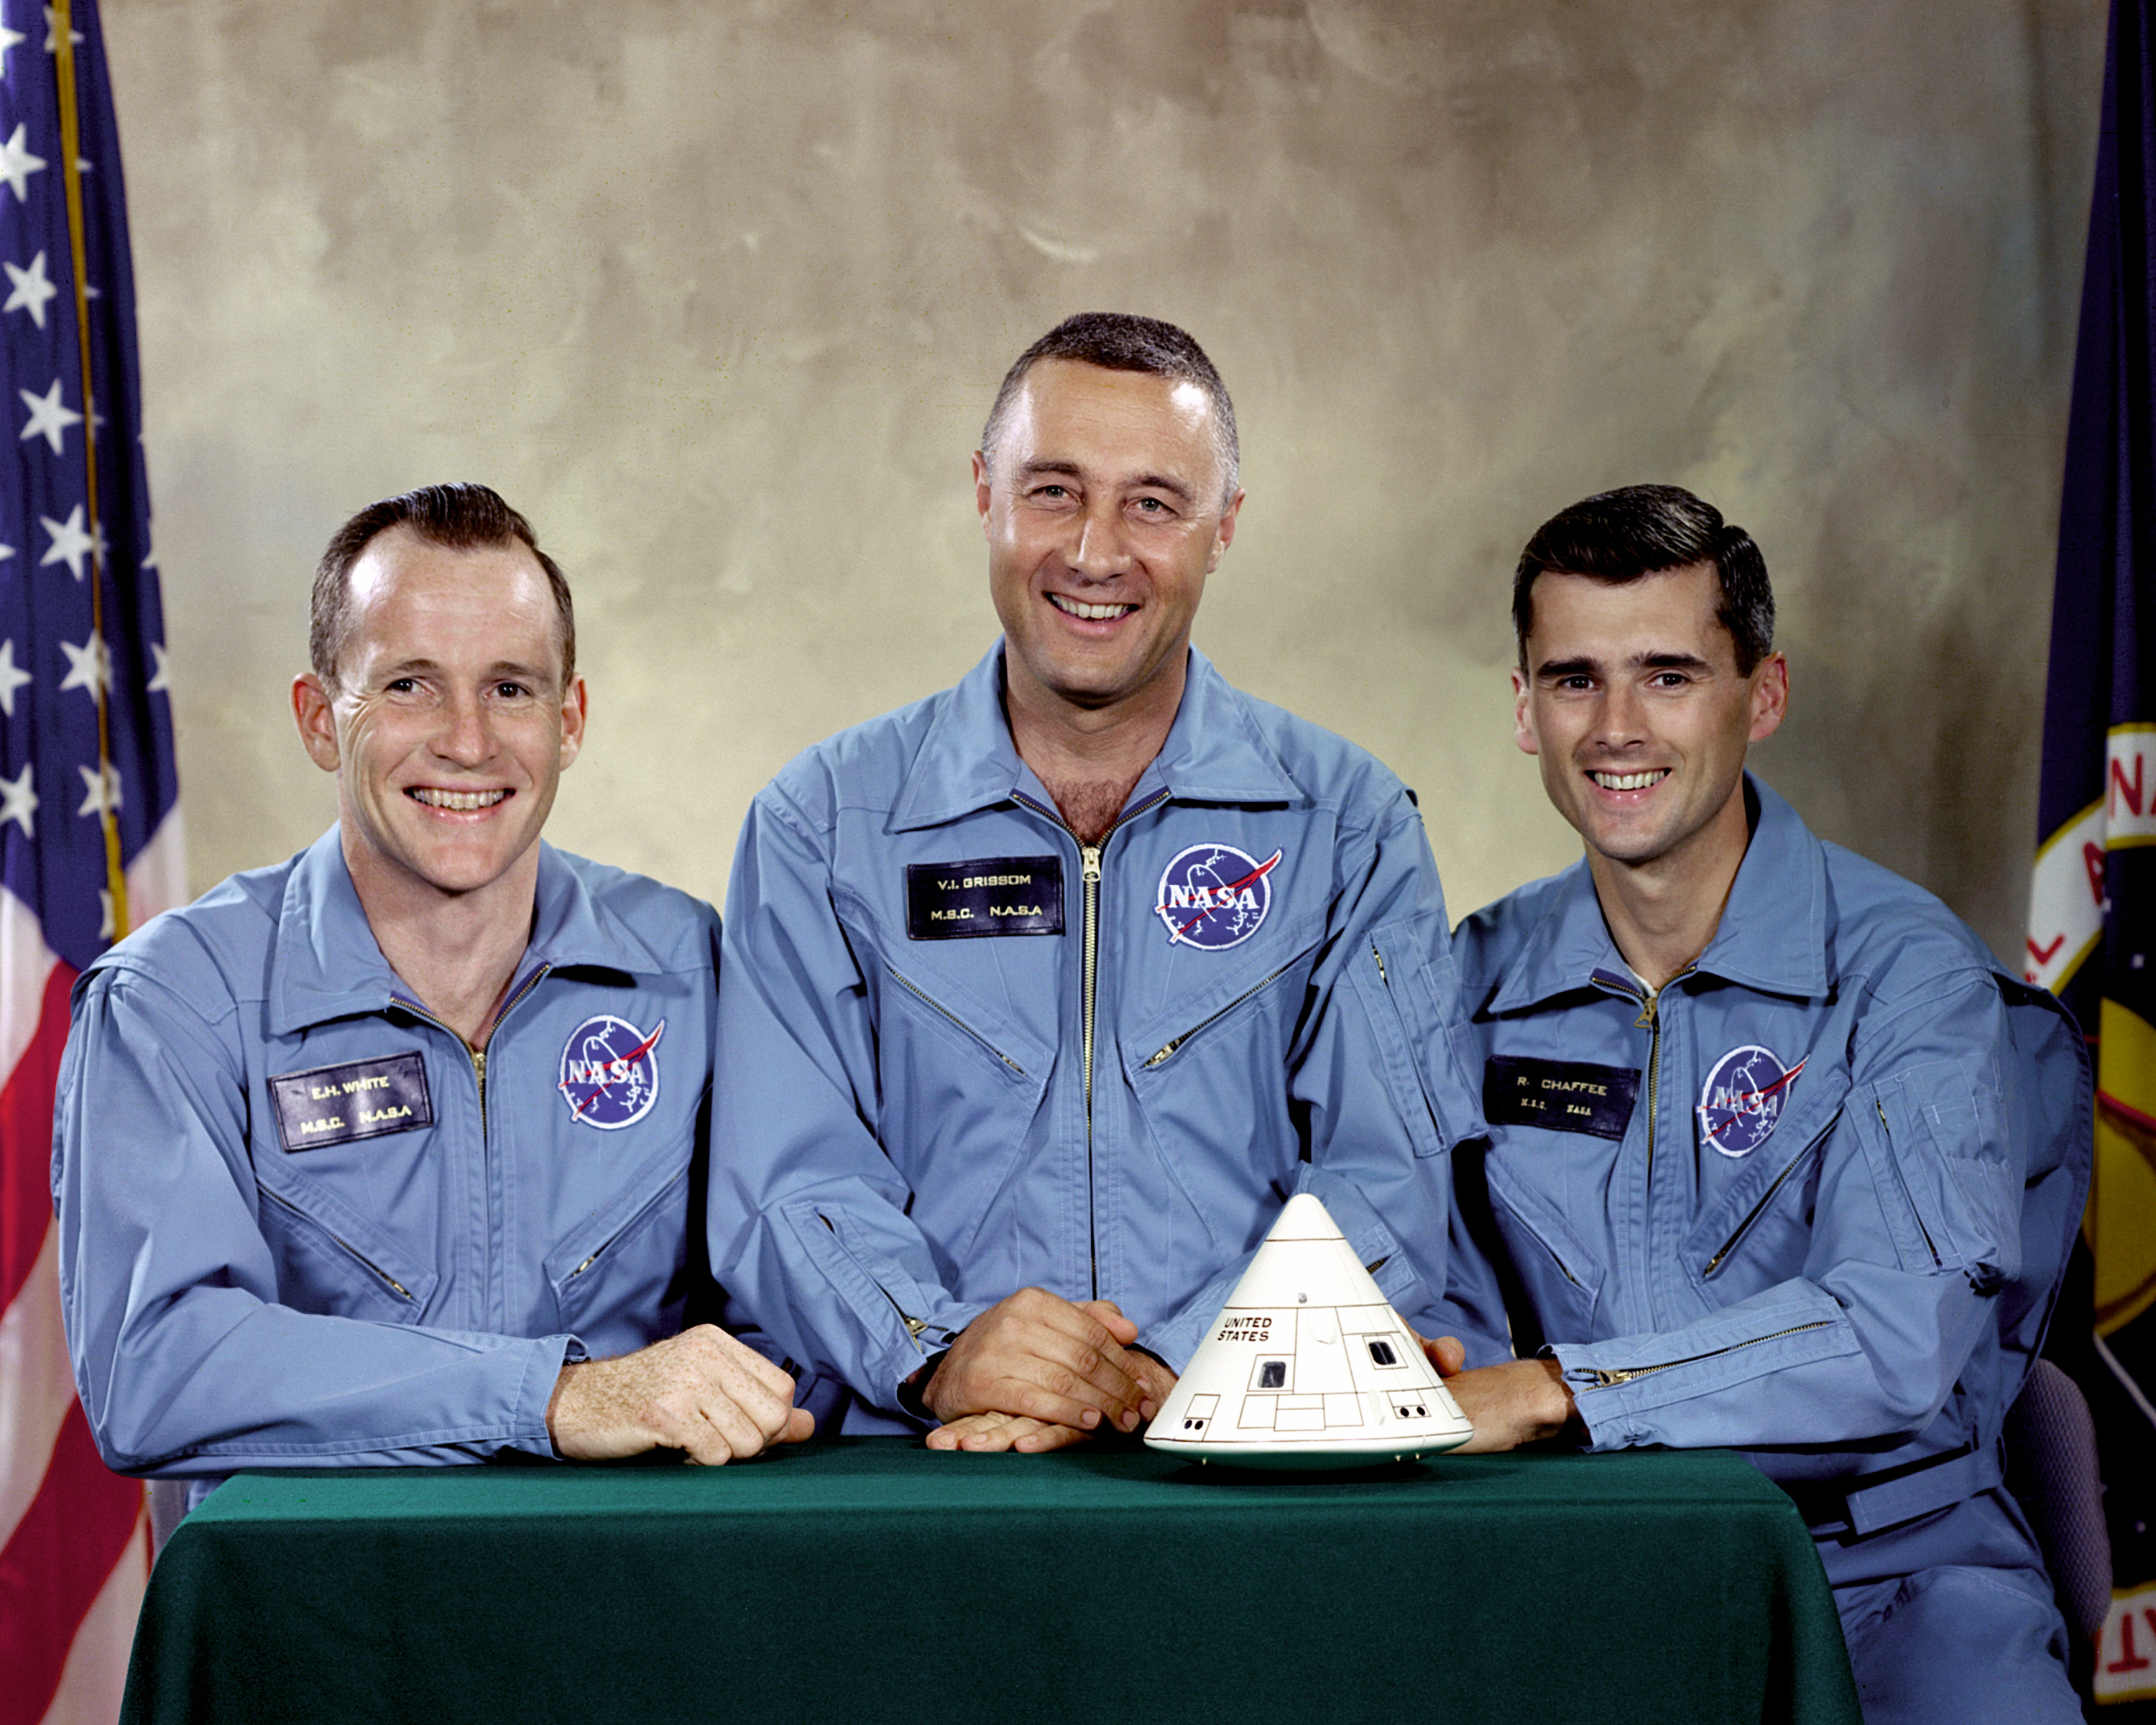 http://upload.wikimedia.org/wikipedia/commons/5/5e/Apollo_1_Prime_Crew_-_GPN-2000-001159.jpg